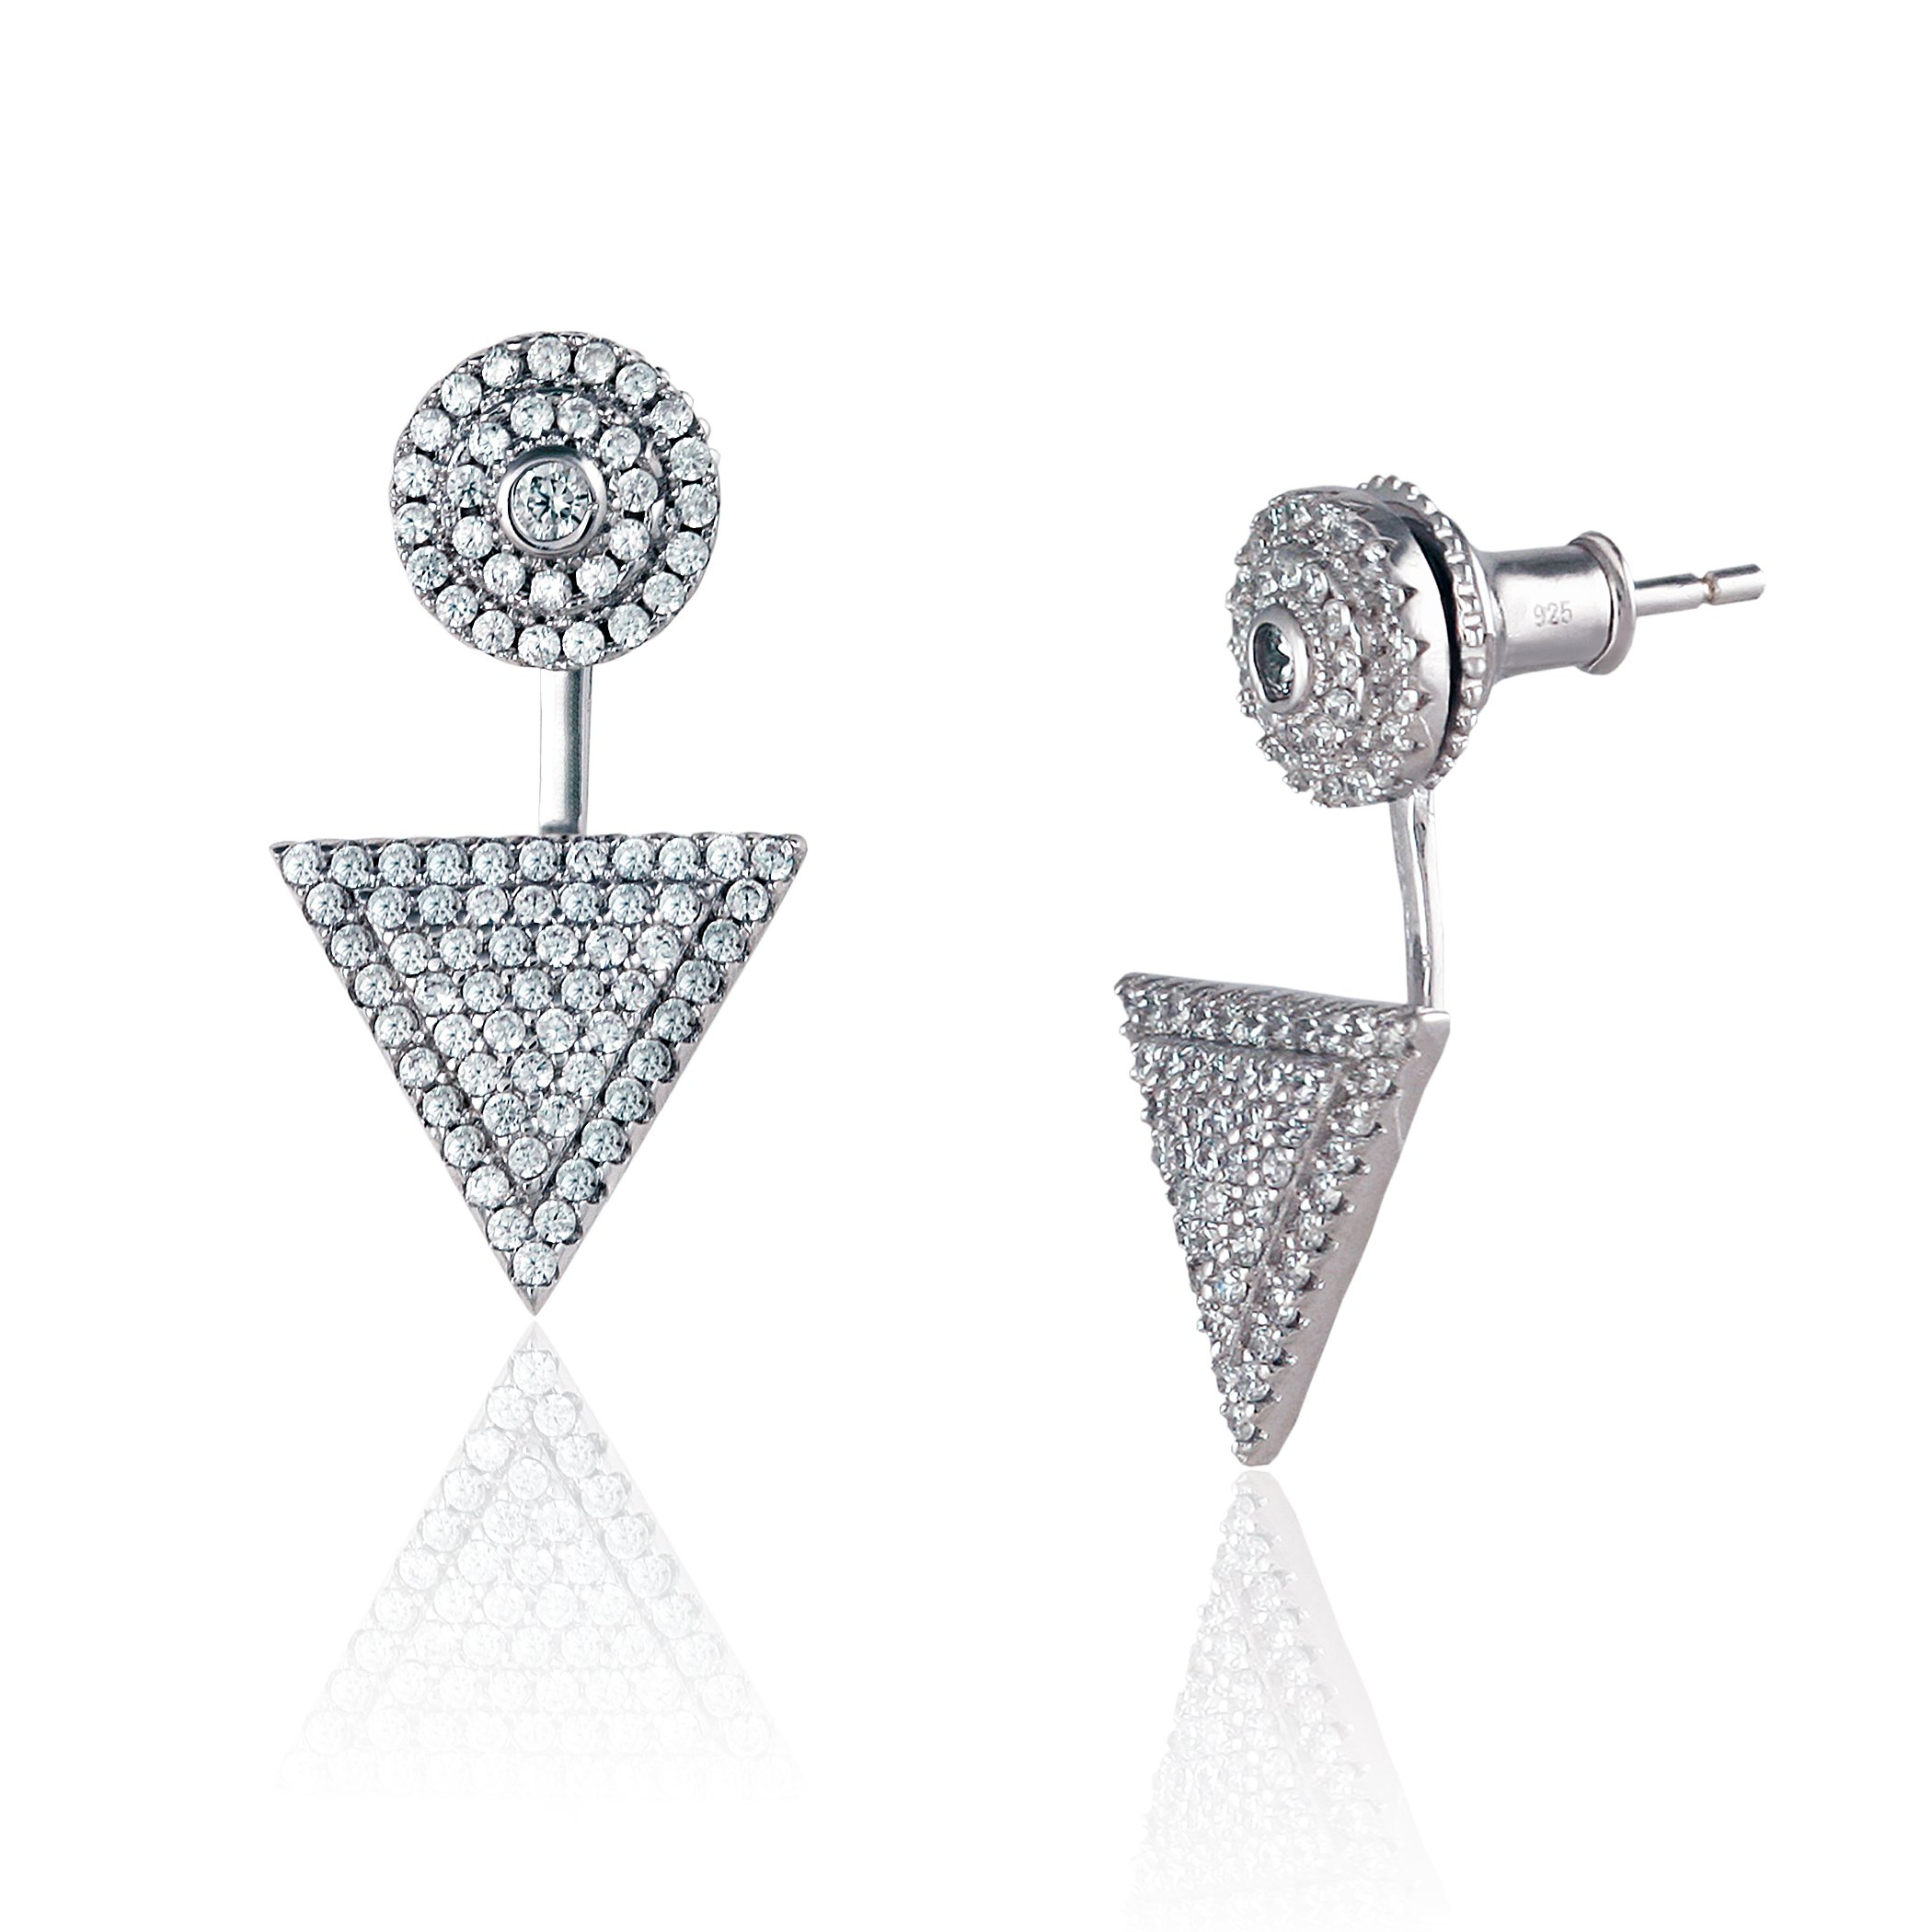 Platinum Plated 925 Sterling Silver Round Cubic Zirconia Round Disc Triangle Pave Earring Jackets